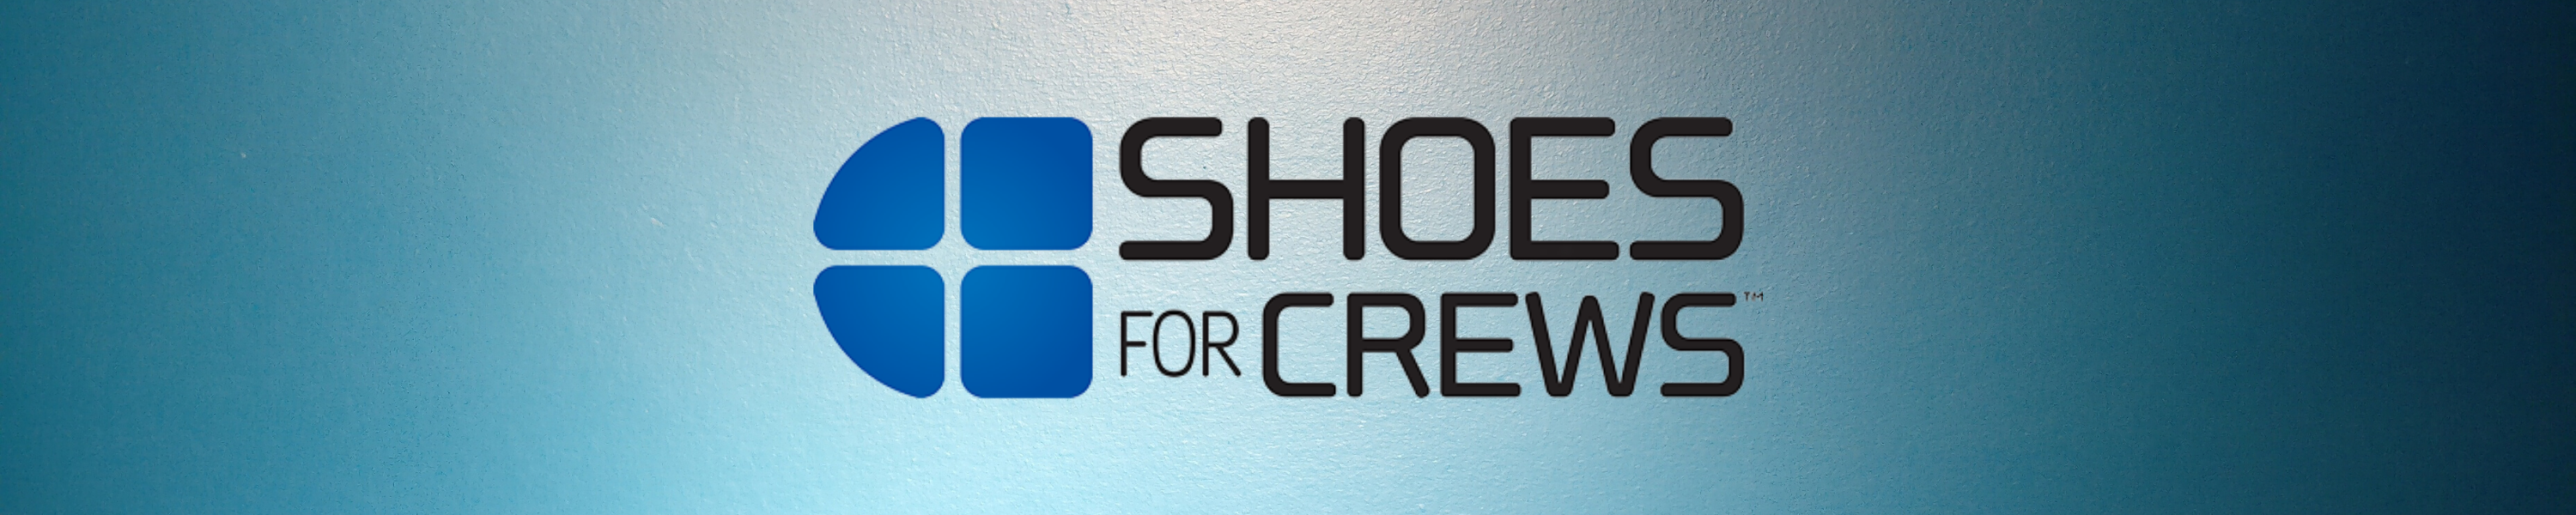 Amazon.co.uk: Shoes for Crews: Shoes for Crews